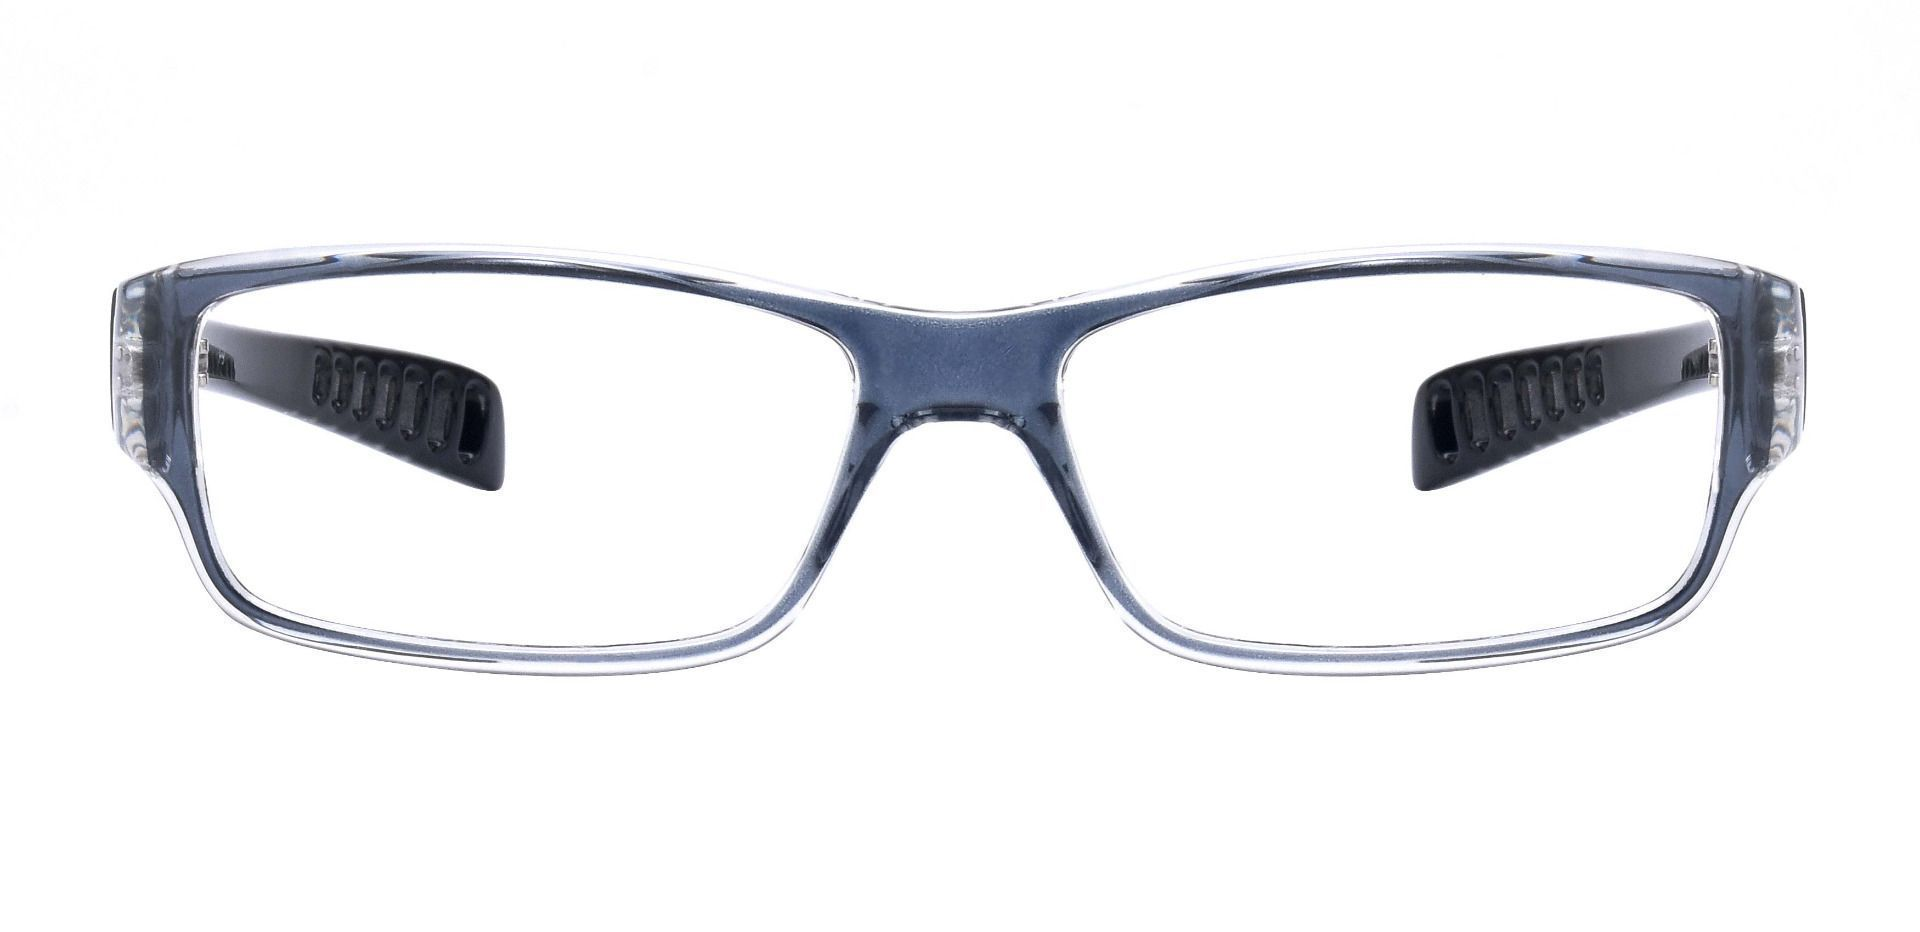 Mercury Rectangle Prescription Glasses - Gray